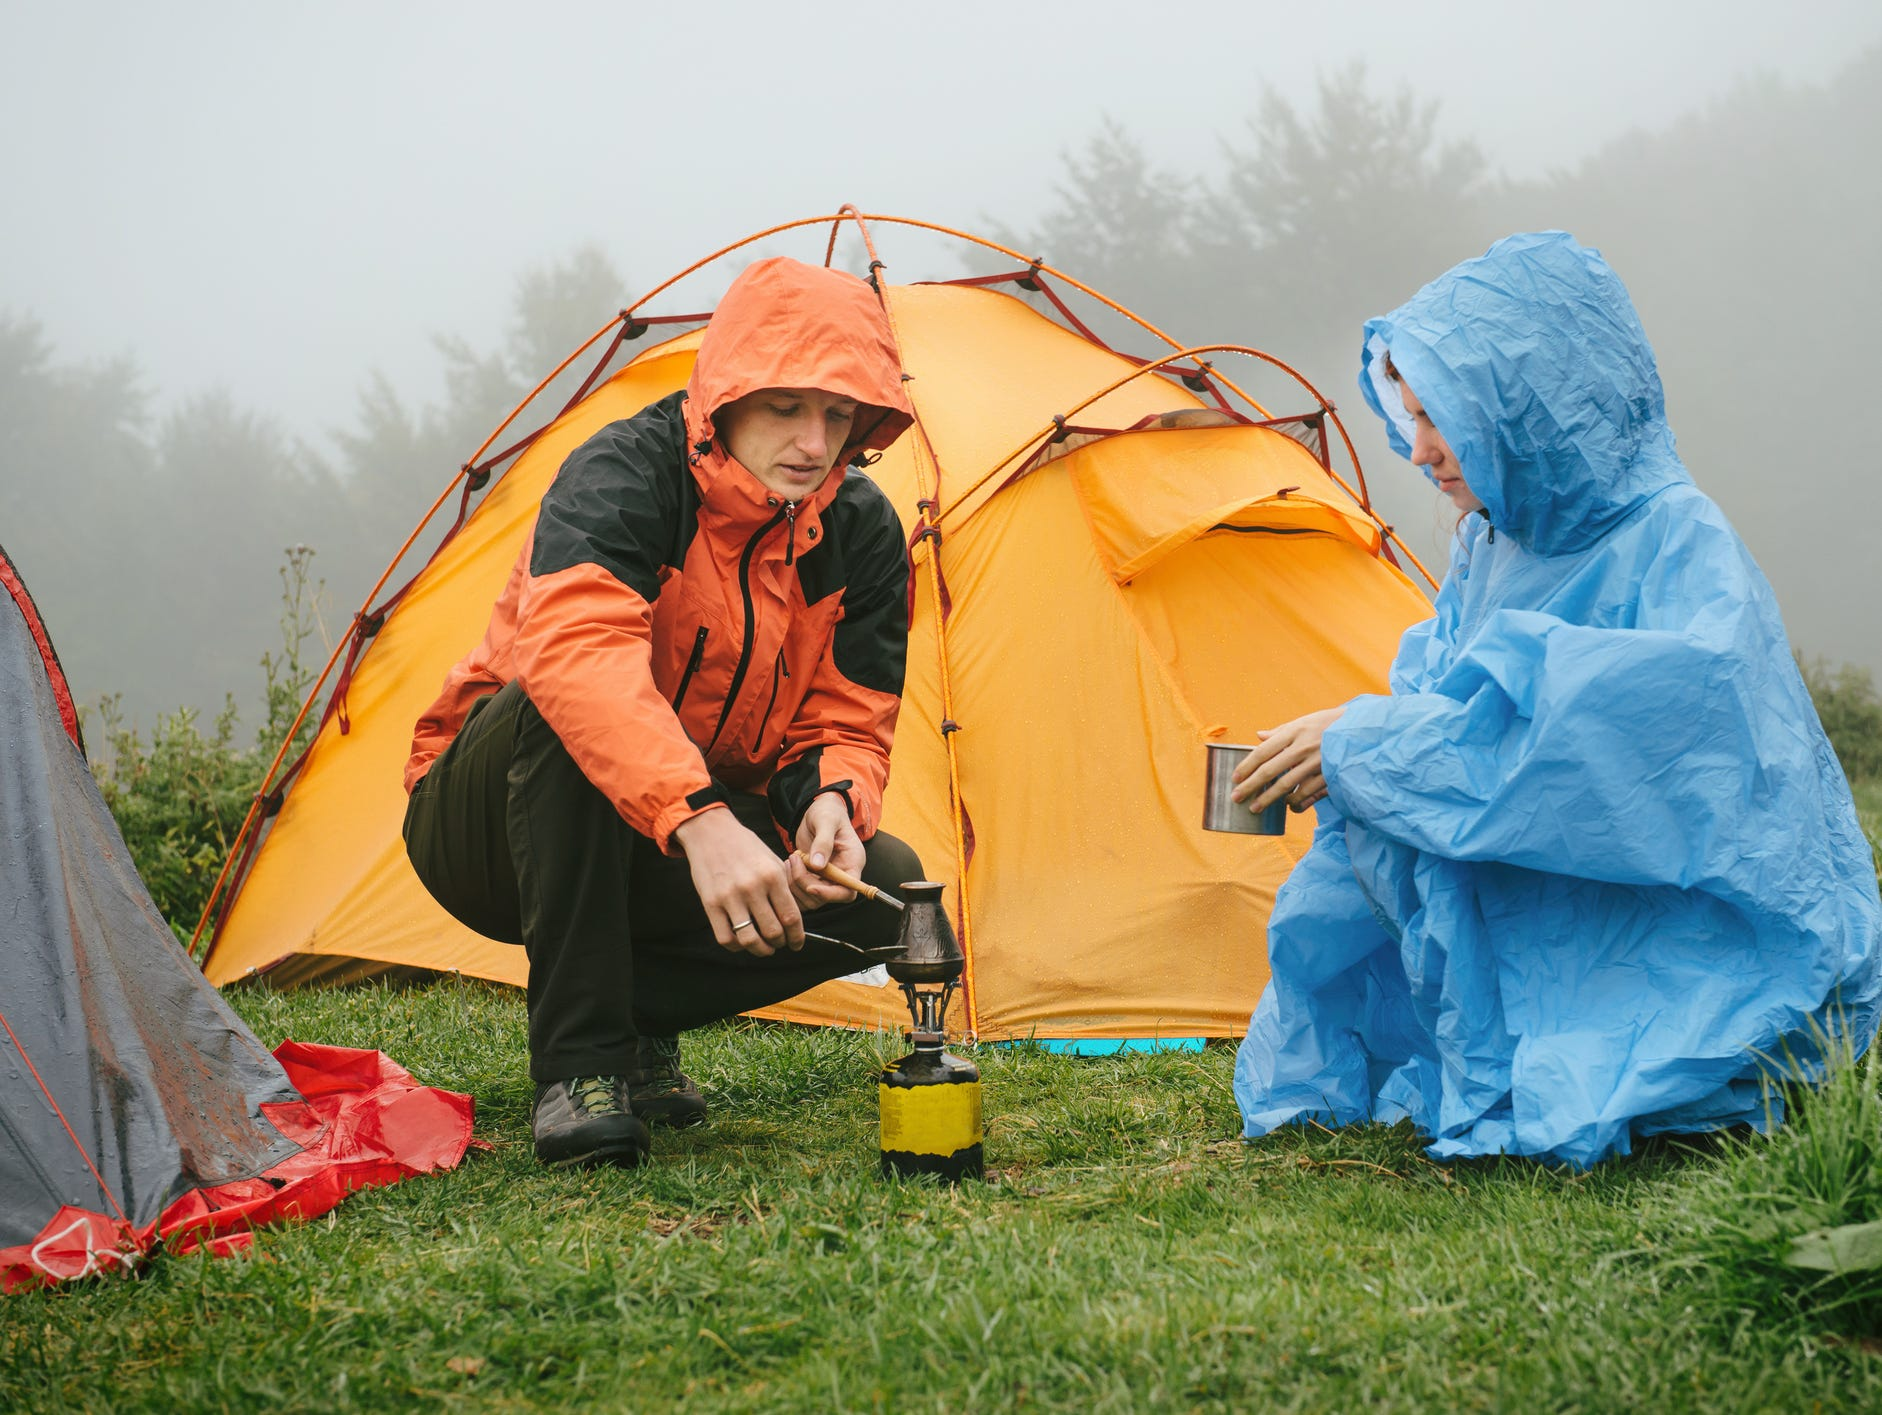 Stay dry Insiders! Stock up on outdoor gear for Spring at REI. Enter 4/3-5/1.